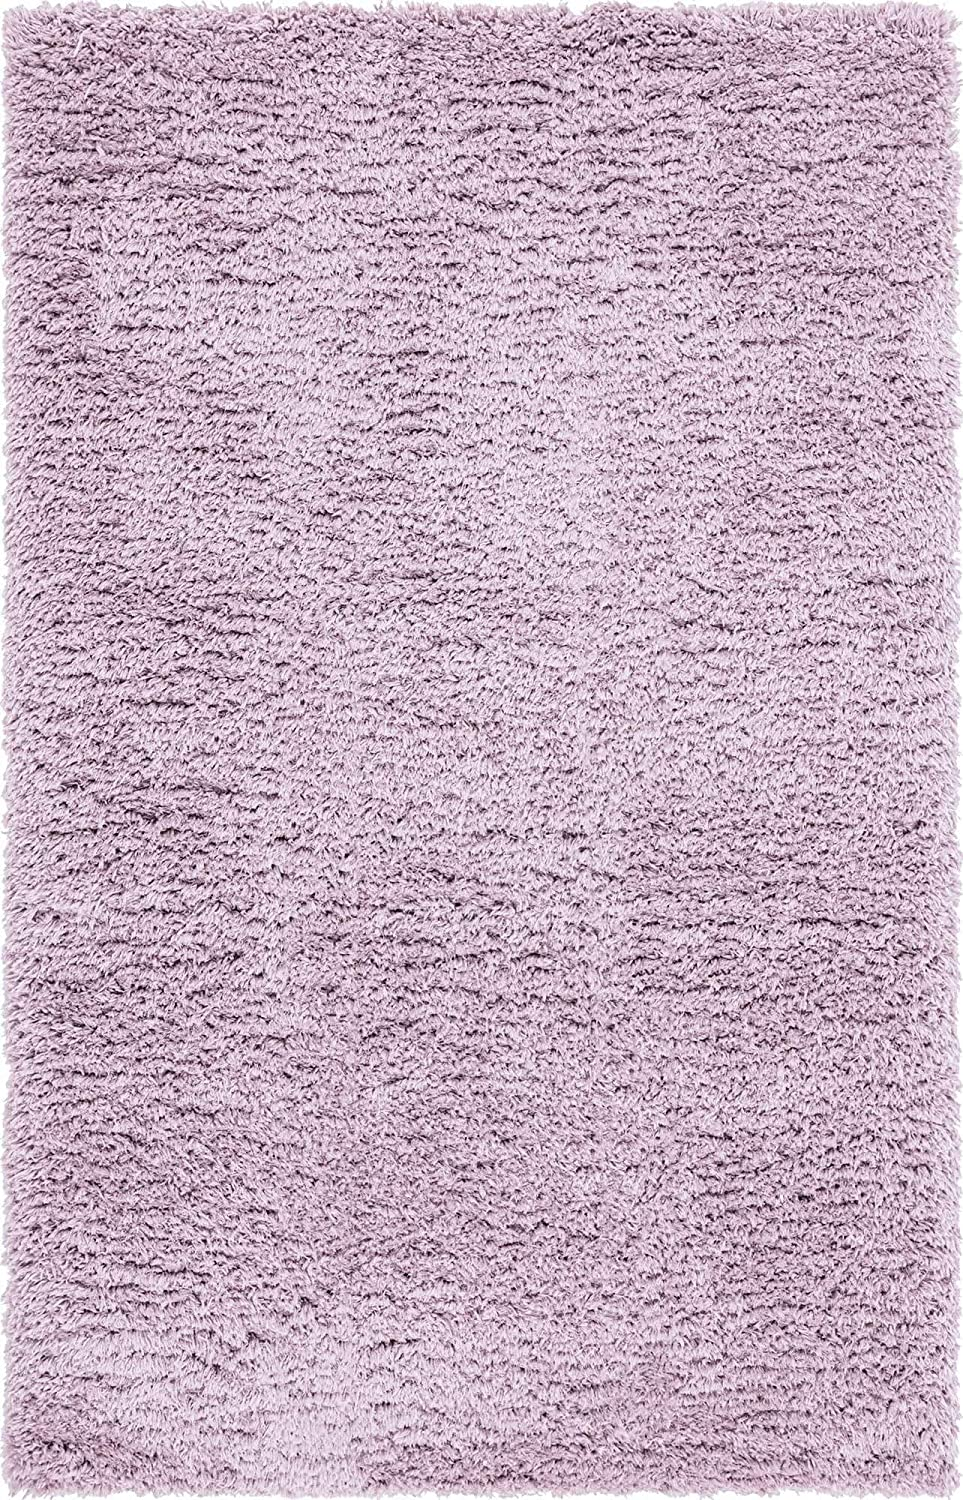 Infinity Collection Solid Shag Area Rug by Rugs.com – Lavender 7' x 10' High-Pile Plush Shag Rug Perfect for Living Rooms, Bedrooms, Dining Rooms and More